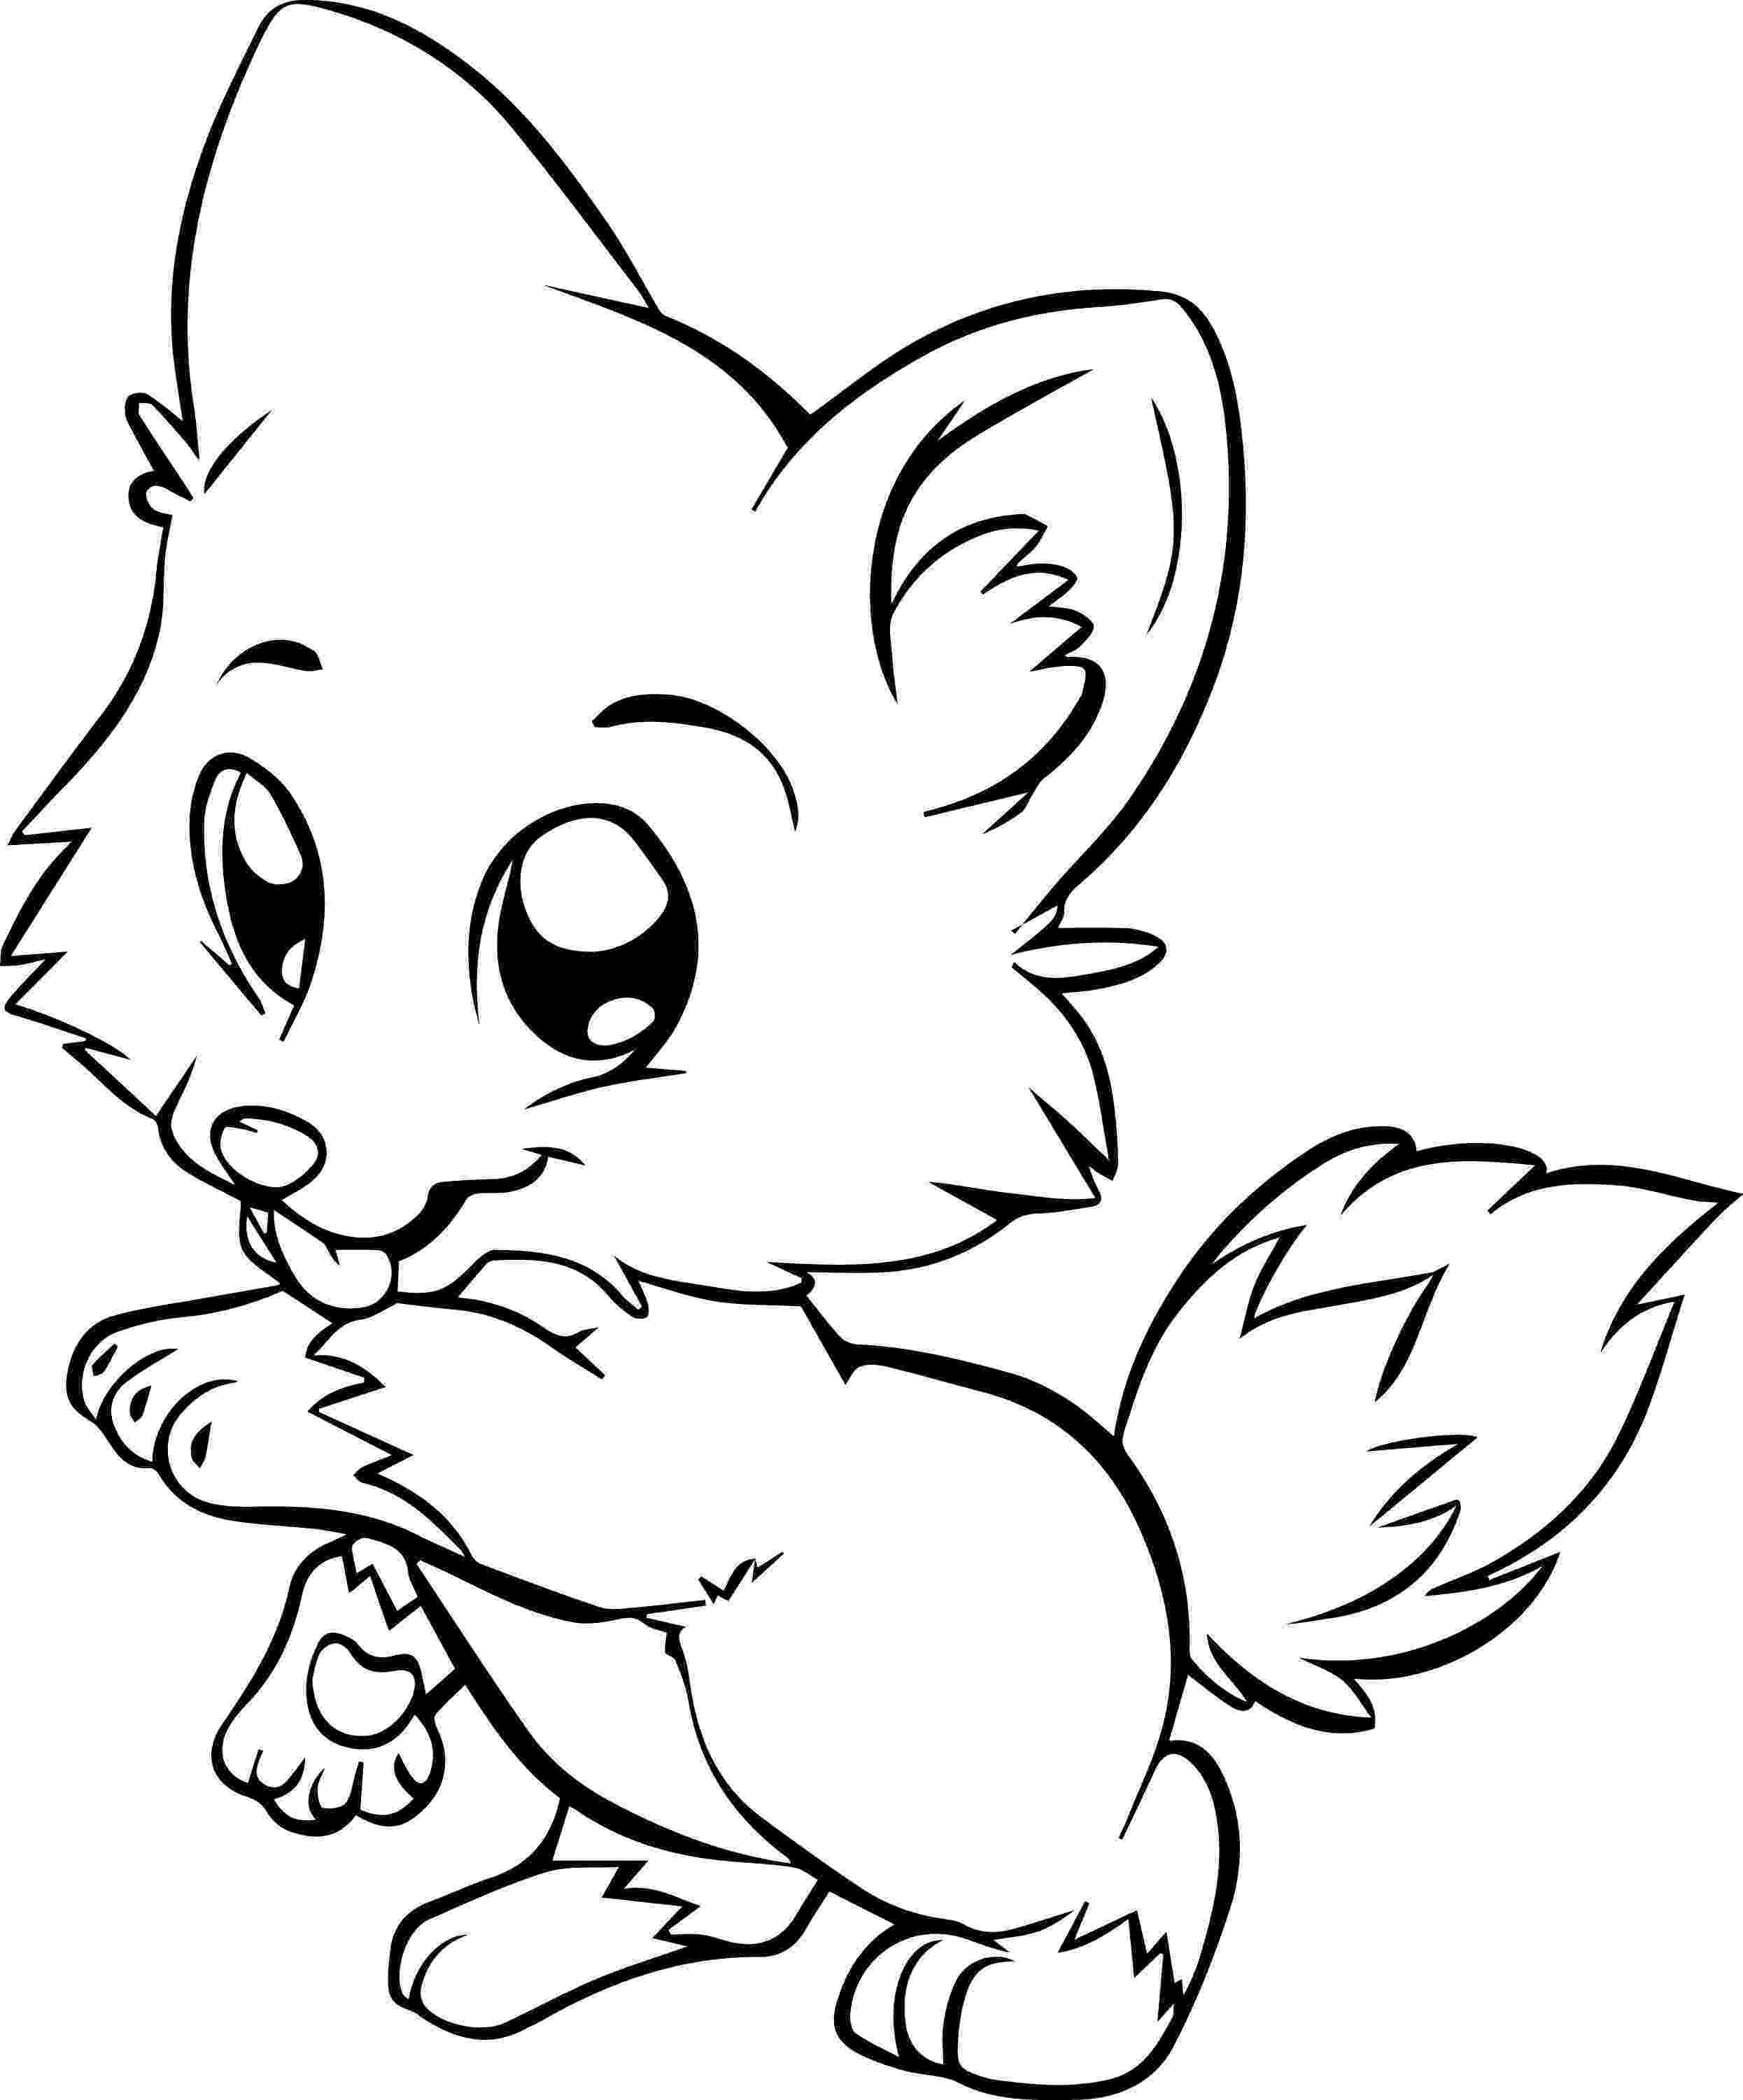 animal coloring sheets quirky artist loft 39cuties39 free animal coloring pages sheets animal coloring 1 1